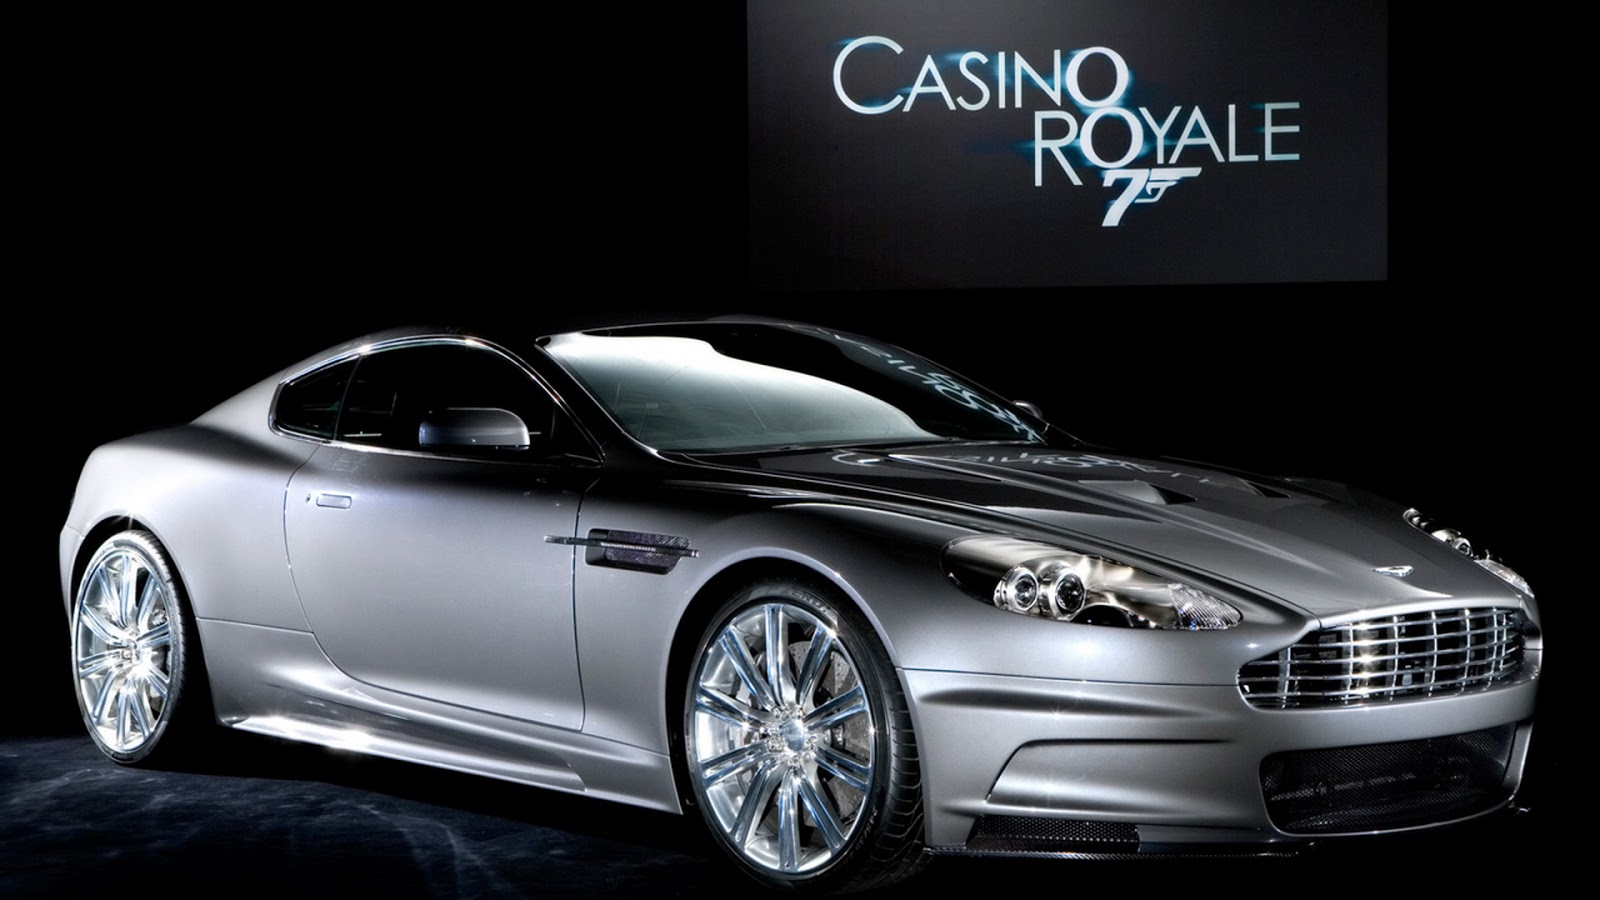 hd wallpaper aston martin db5 james bond hd wallpapers. Cars Review. Best American Auto & Cars Review